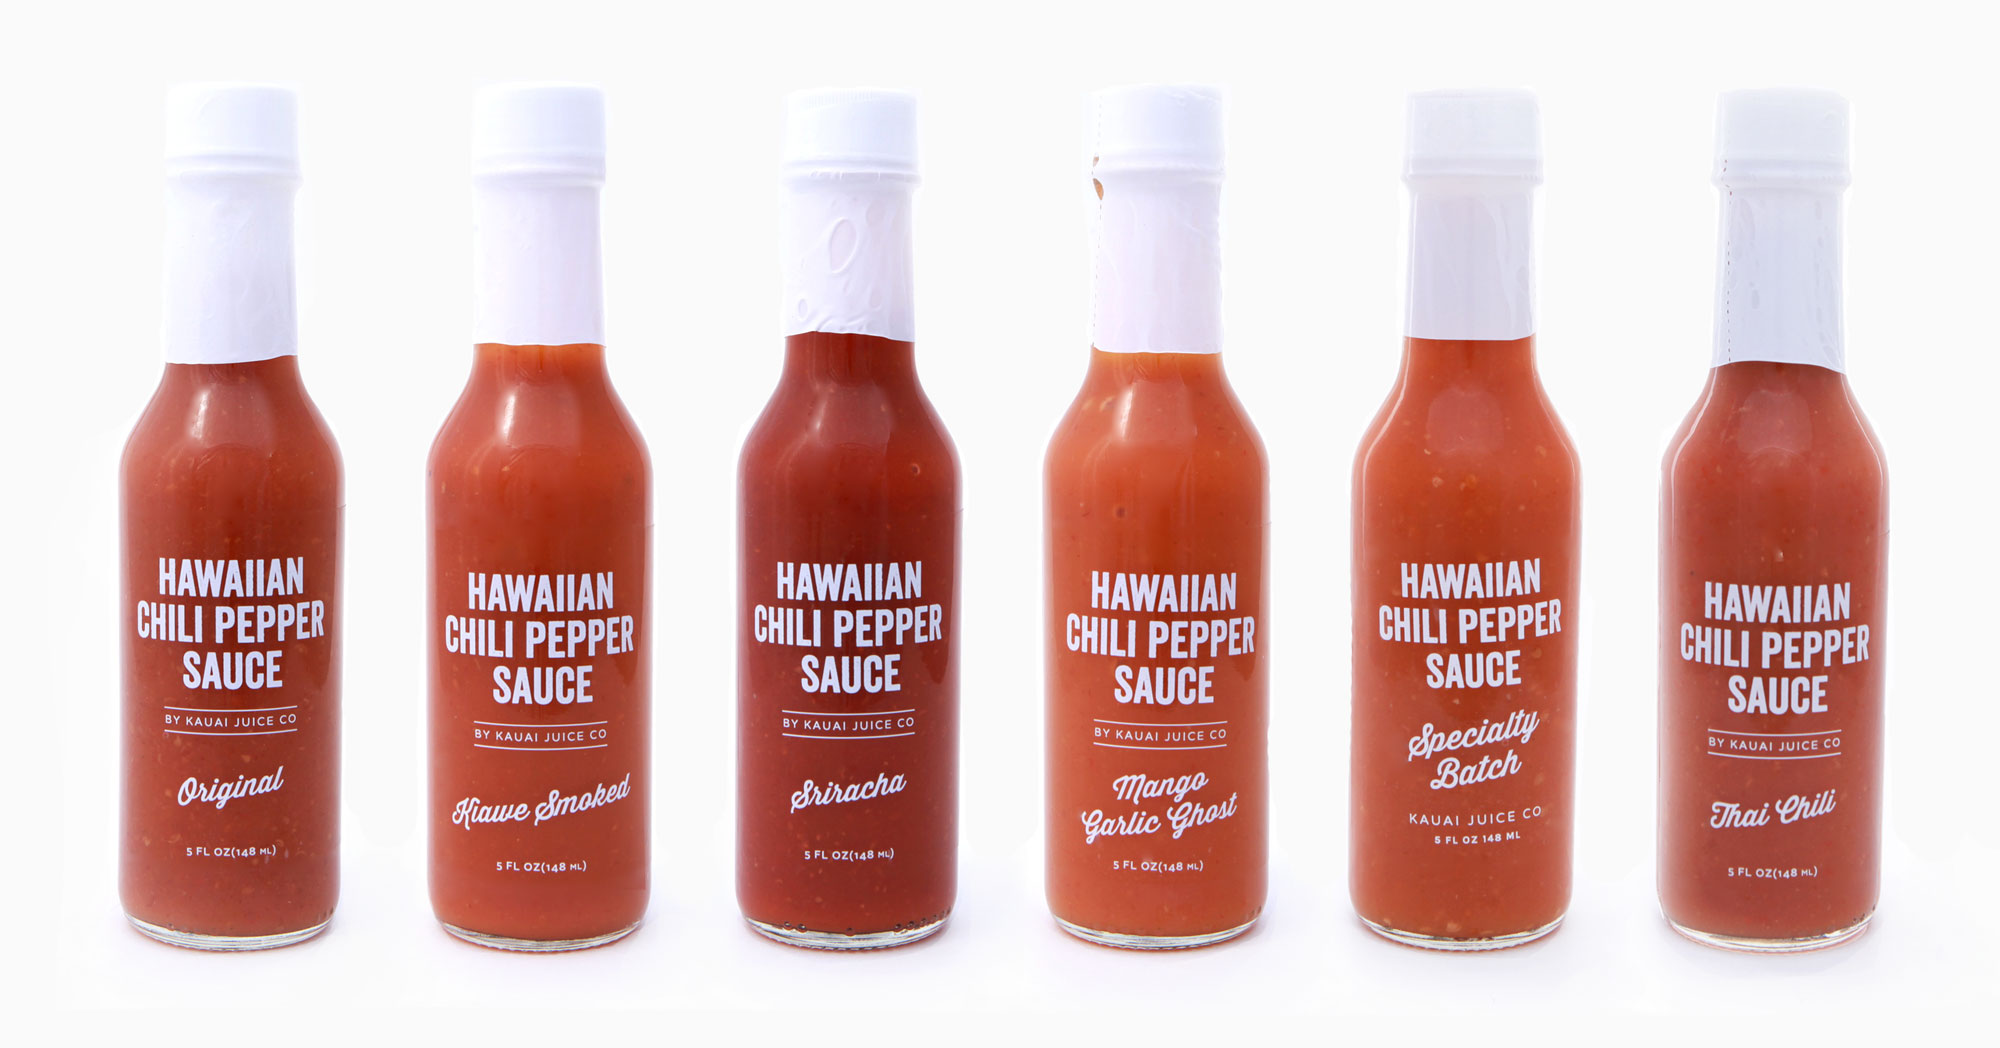 Hawaiian-Chili-Pepper-Sauce-Bottles.jpg